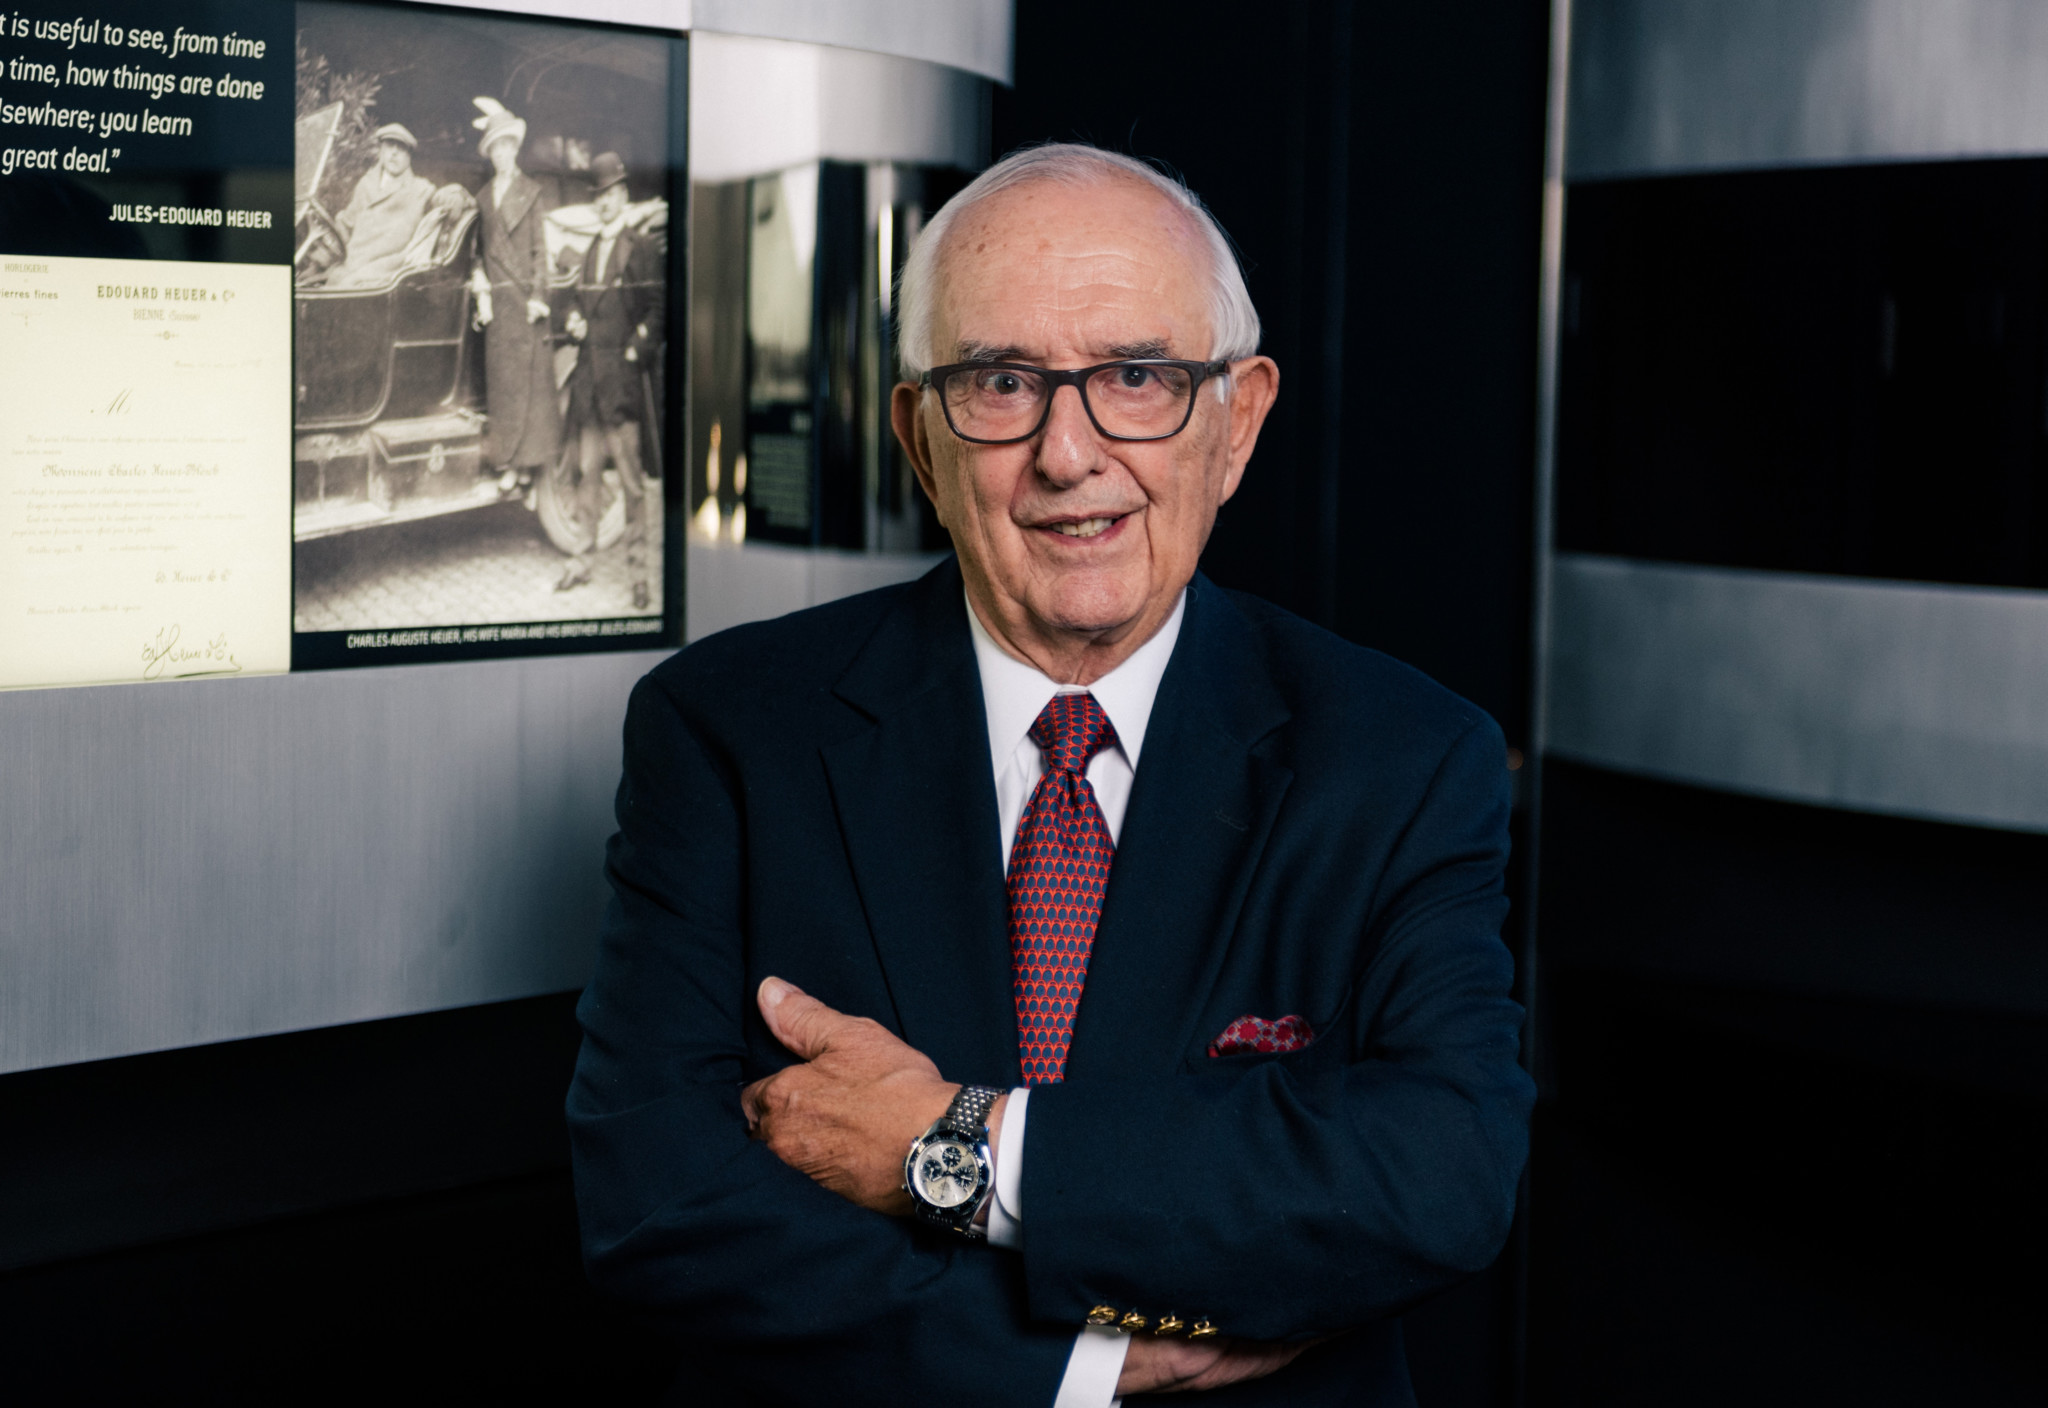 Jack Heuer from Tag Heuer